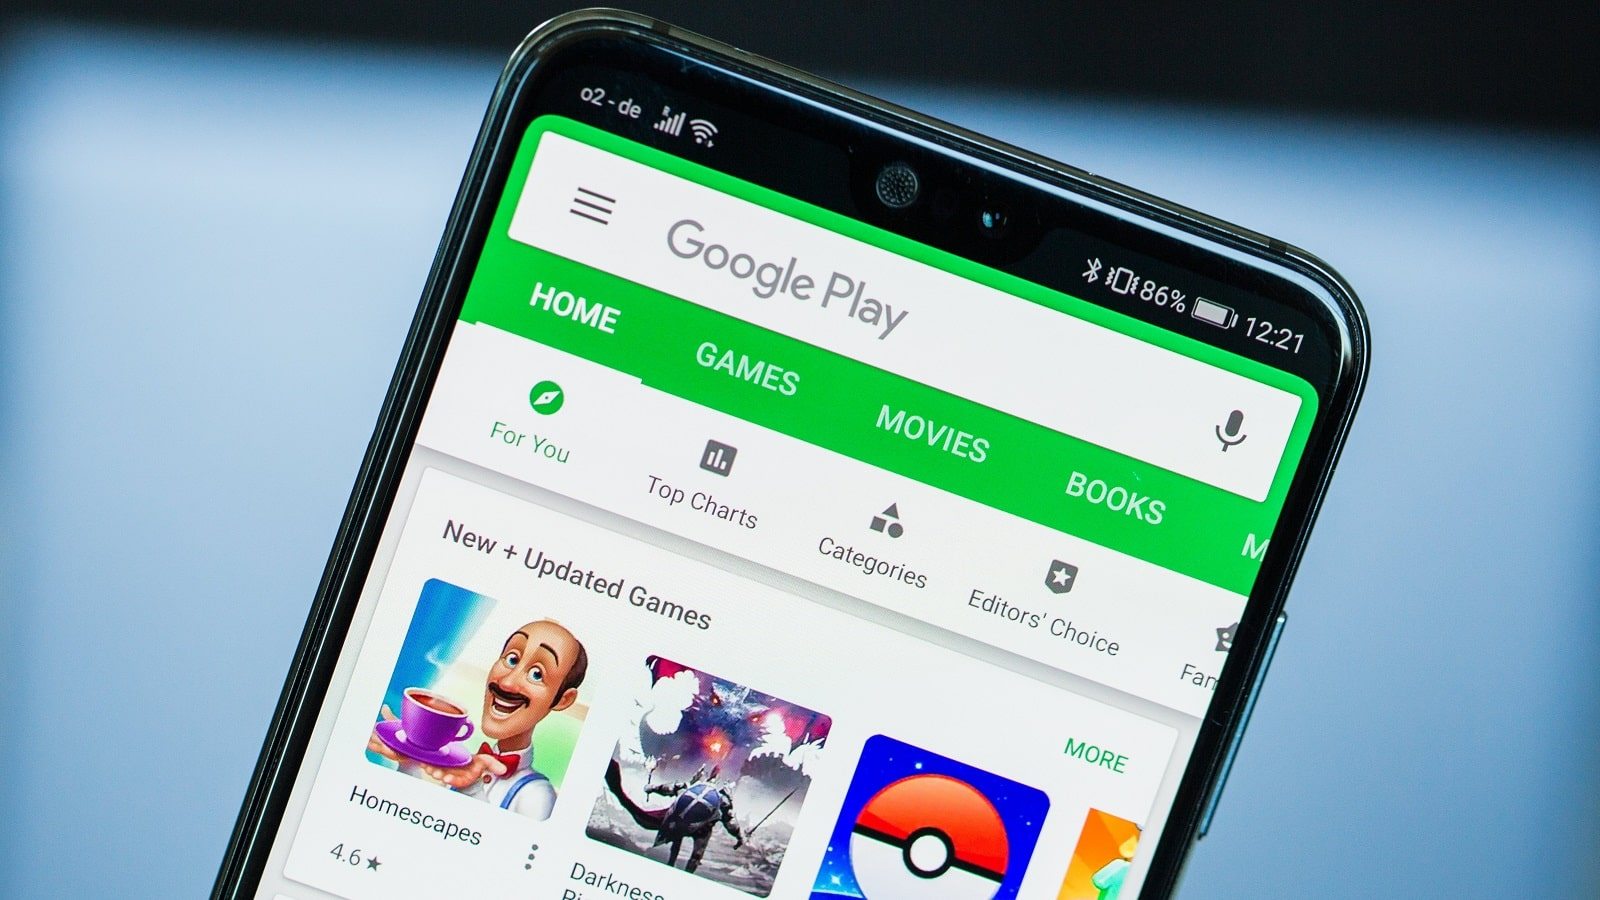 google play app store on android phone